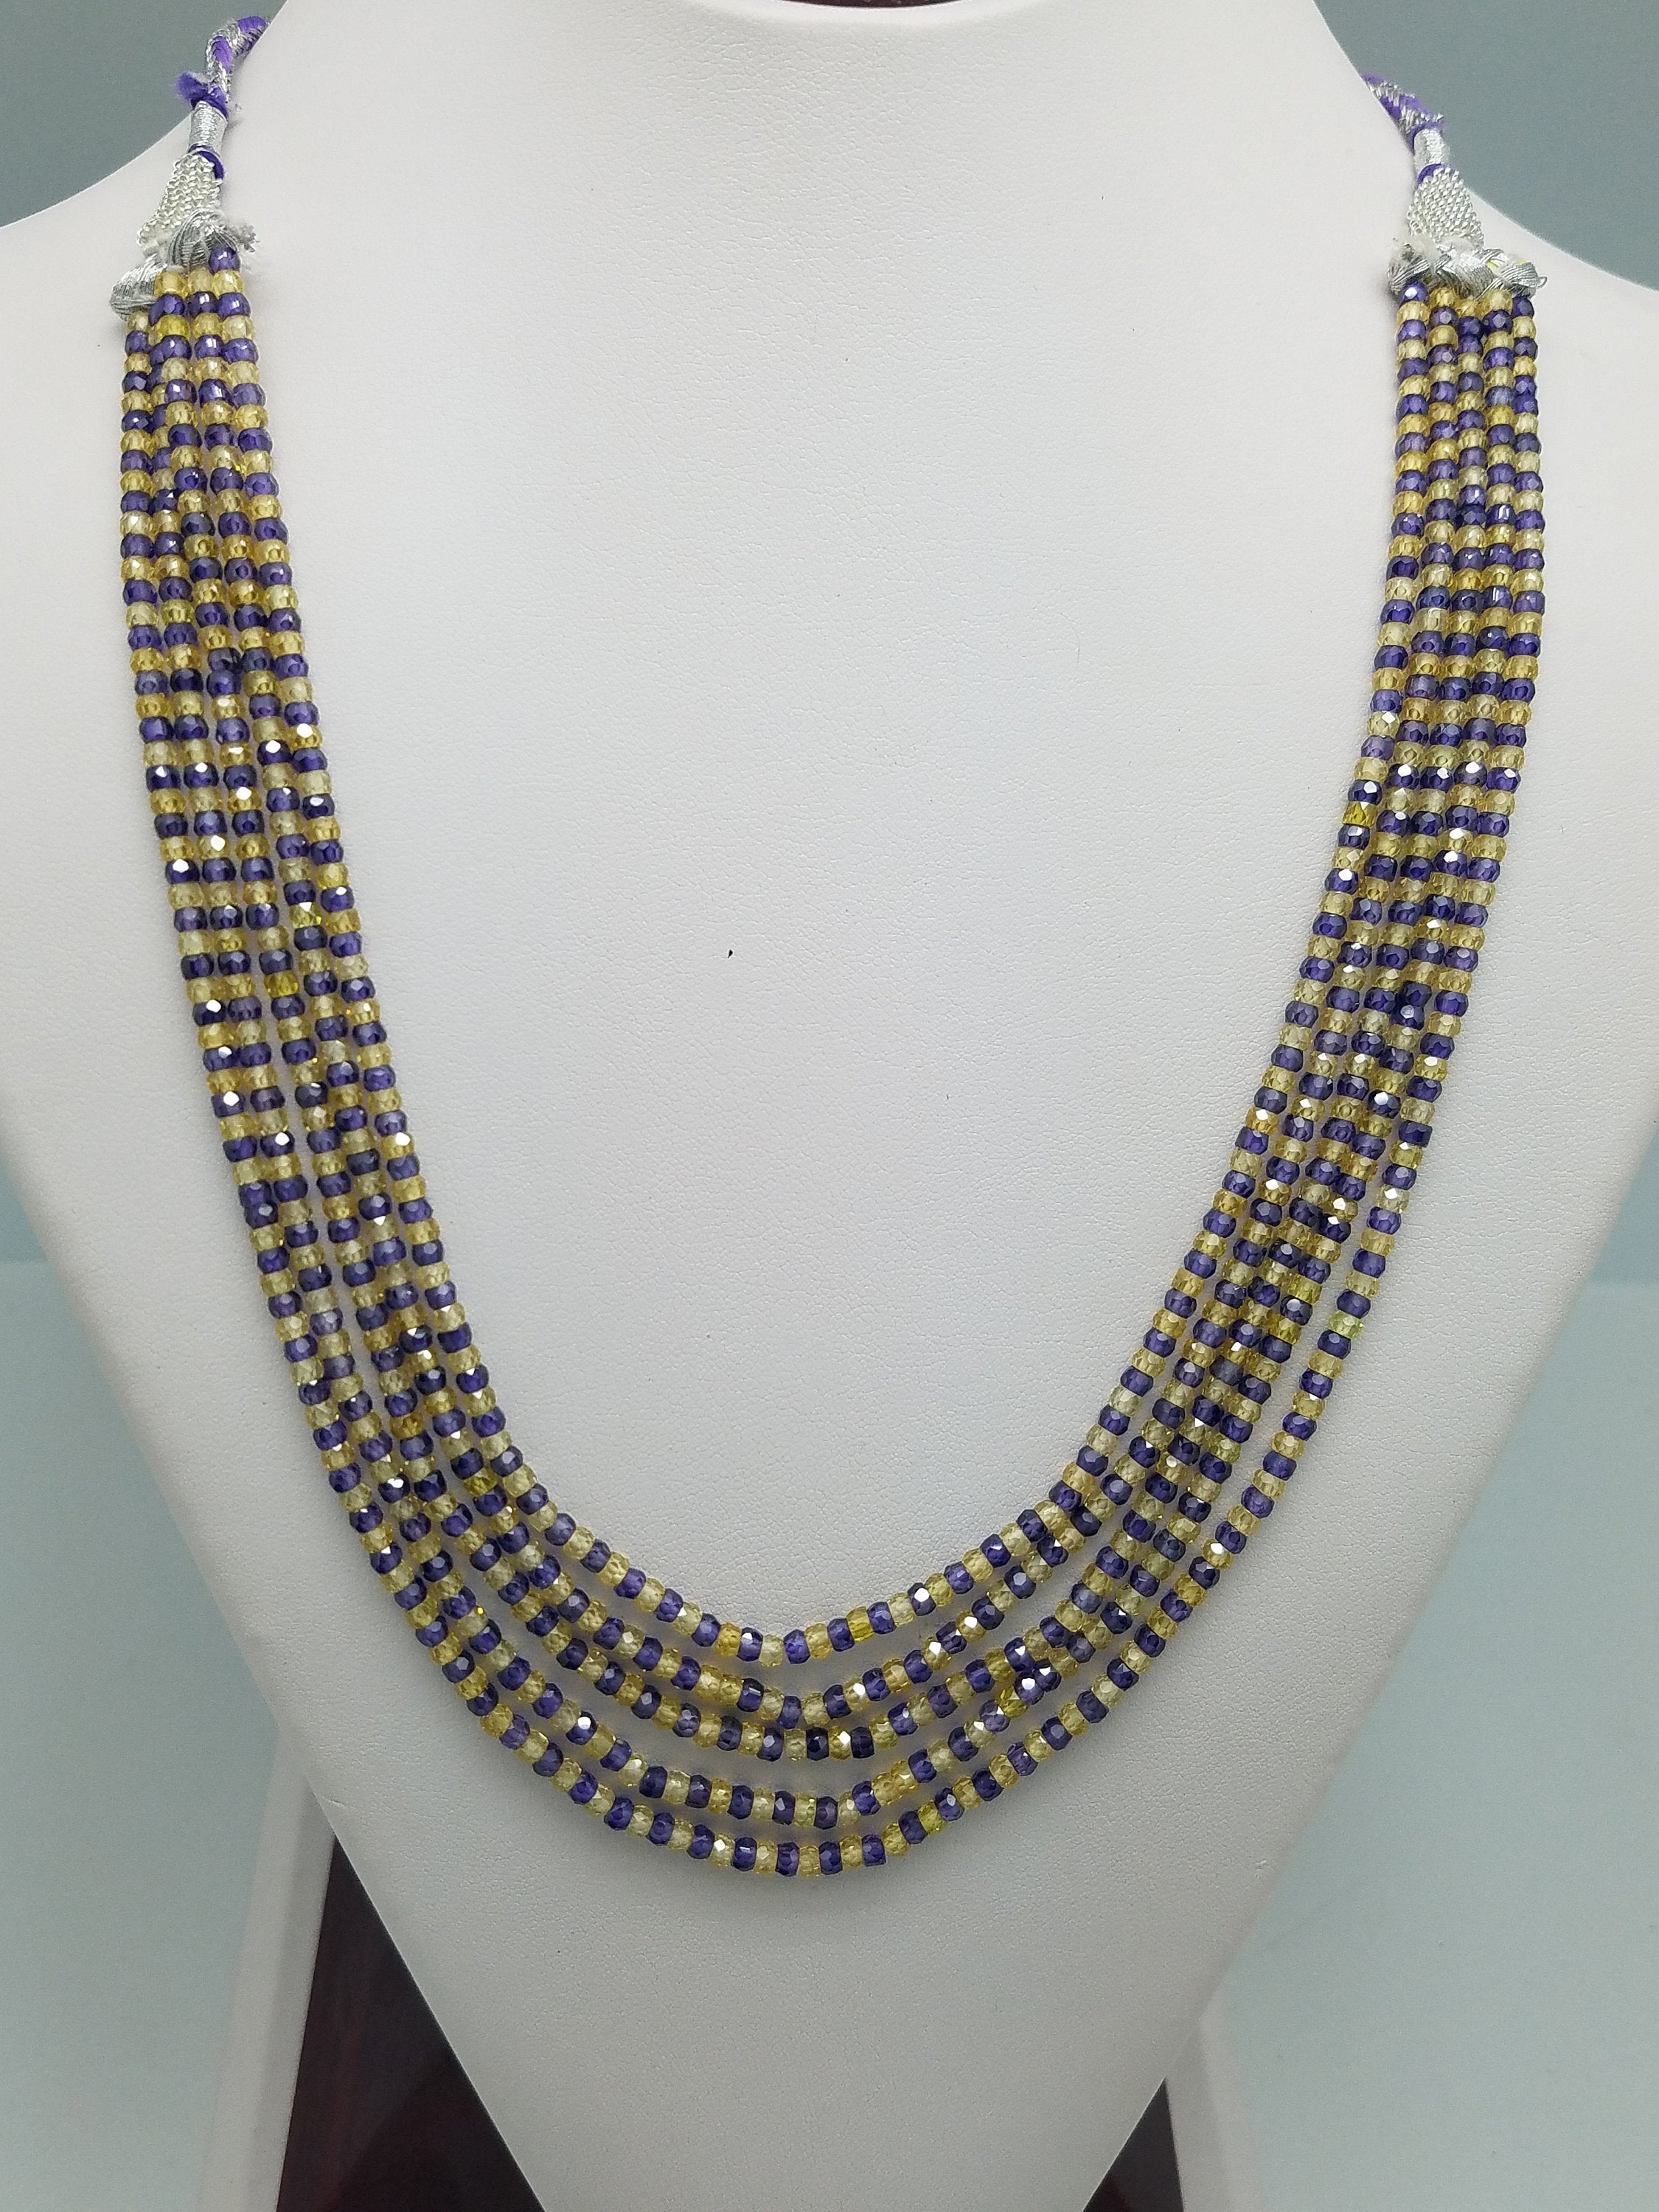 3mm Yellow Purple Mixed CZ Beaded Necklace, 5 Strands, Gemstone Beaded Necklace